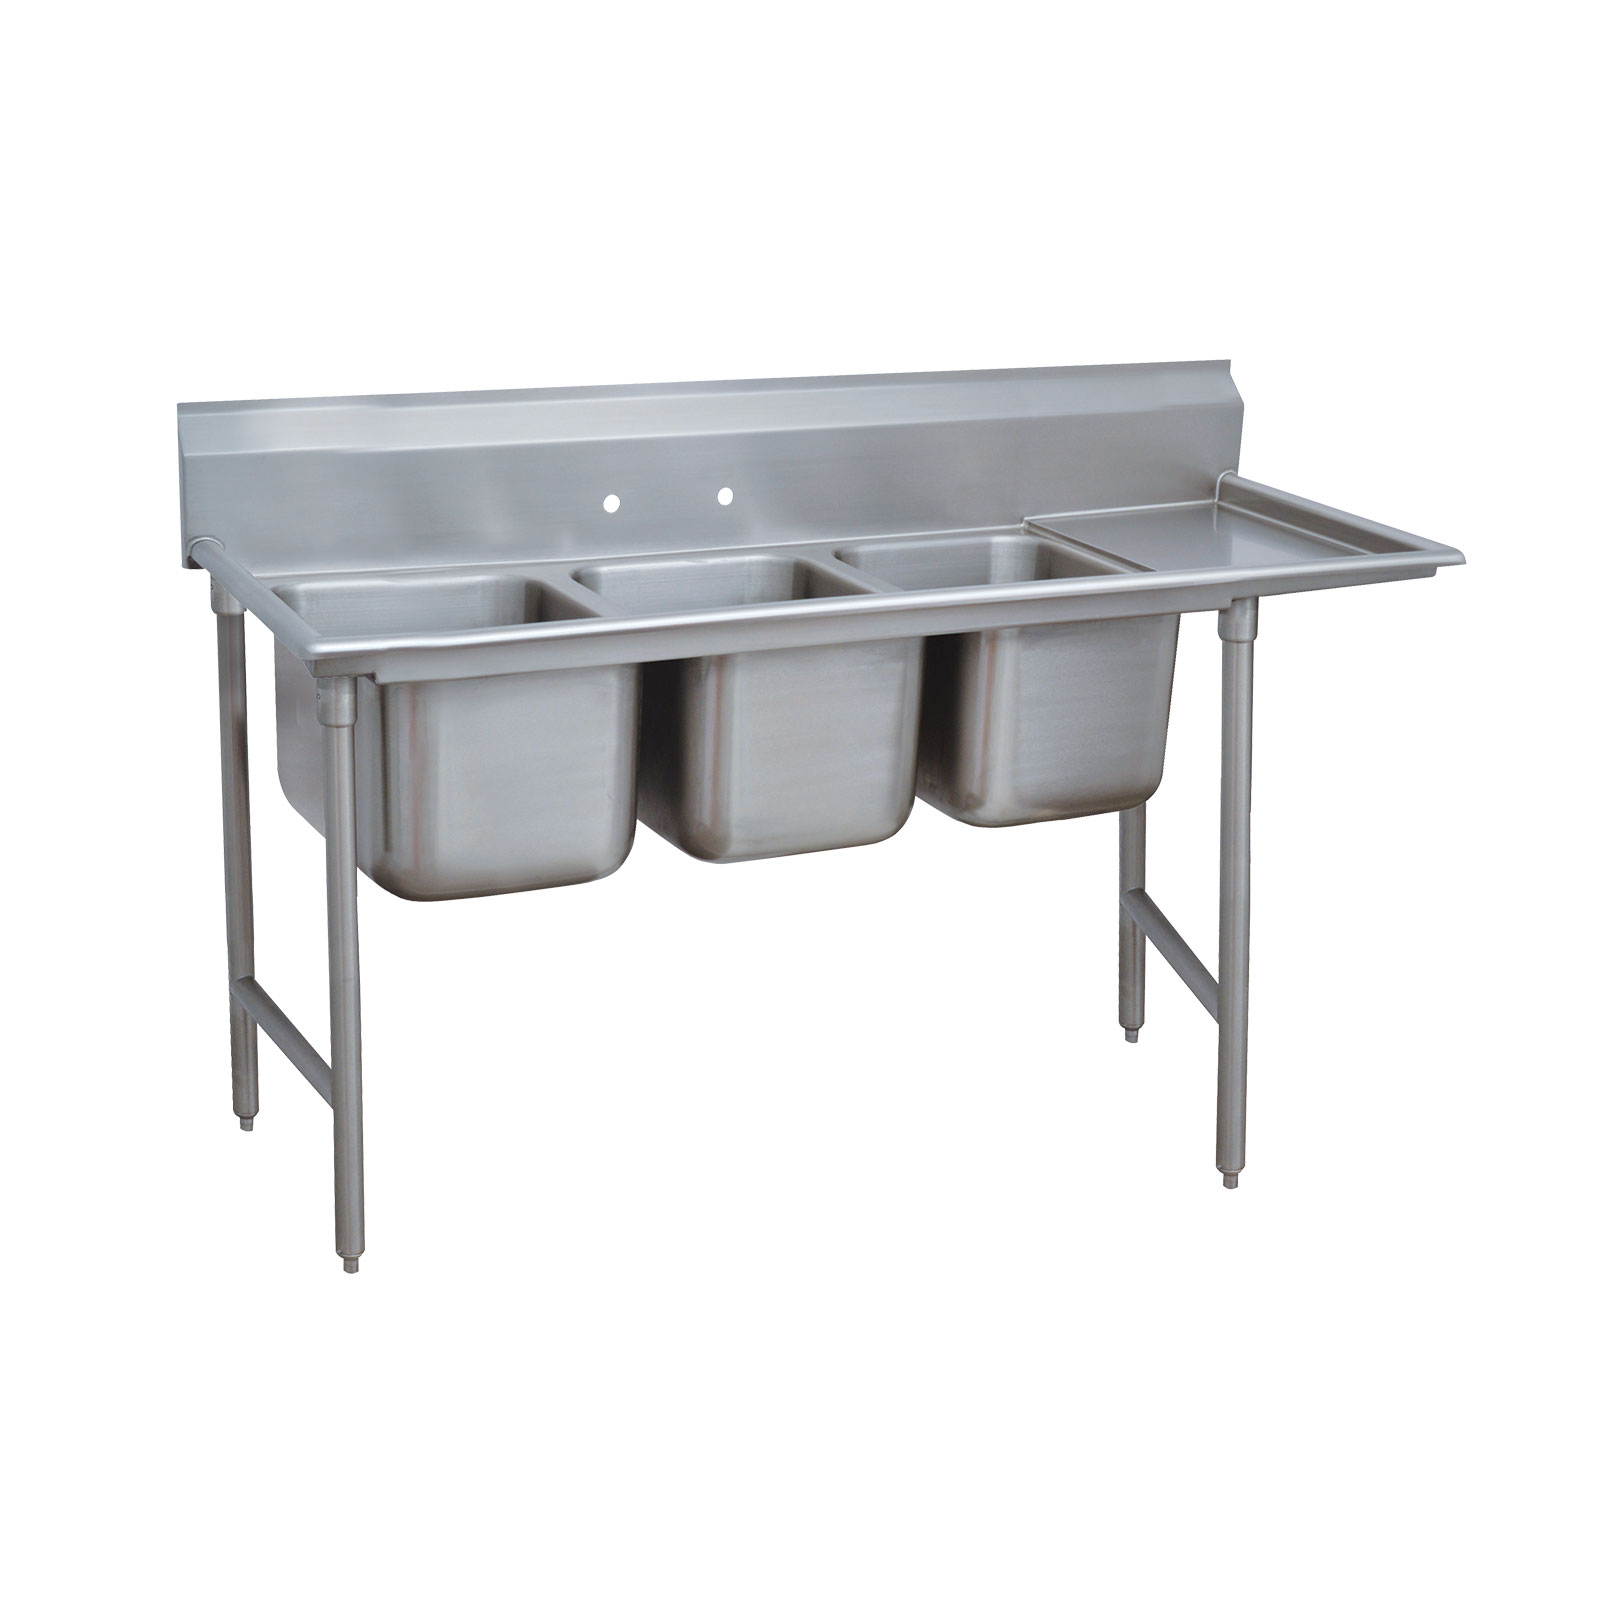 Advance Tabco 9-23-60-18R sink, (3) three compartment